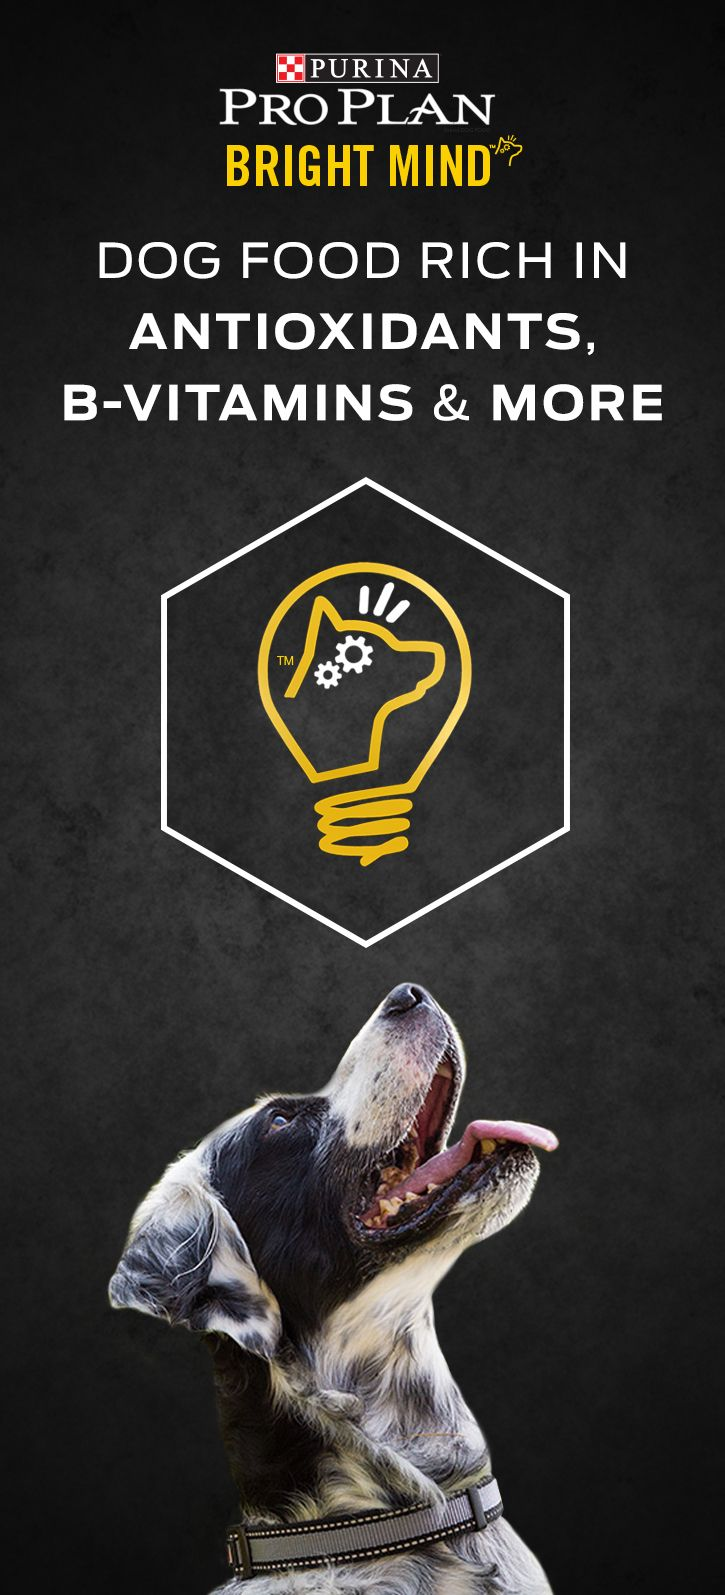 Is your dog's food feeding your dog's brain? Purina Pro Plan Bright Mind Adult is specially formulated to nourish your dog's mind throughout adulthood. Our Bright Mind Adult formulas contain a proprietary blend of nutrients including DHA & EPA, Antioxidants, B Vitamins, & Arginine to support a dog's cognitive health throughout adulthood. And if your dog is 7 years or older, there are Bright Mind Adult 7+ formulas which promote mental sharpness and alertness in dogs seven and older. Try it…